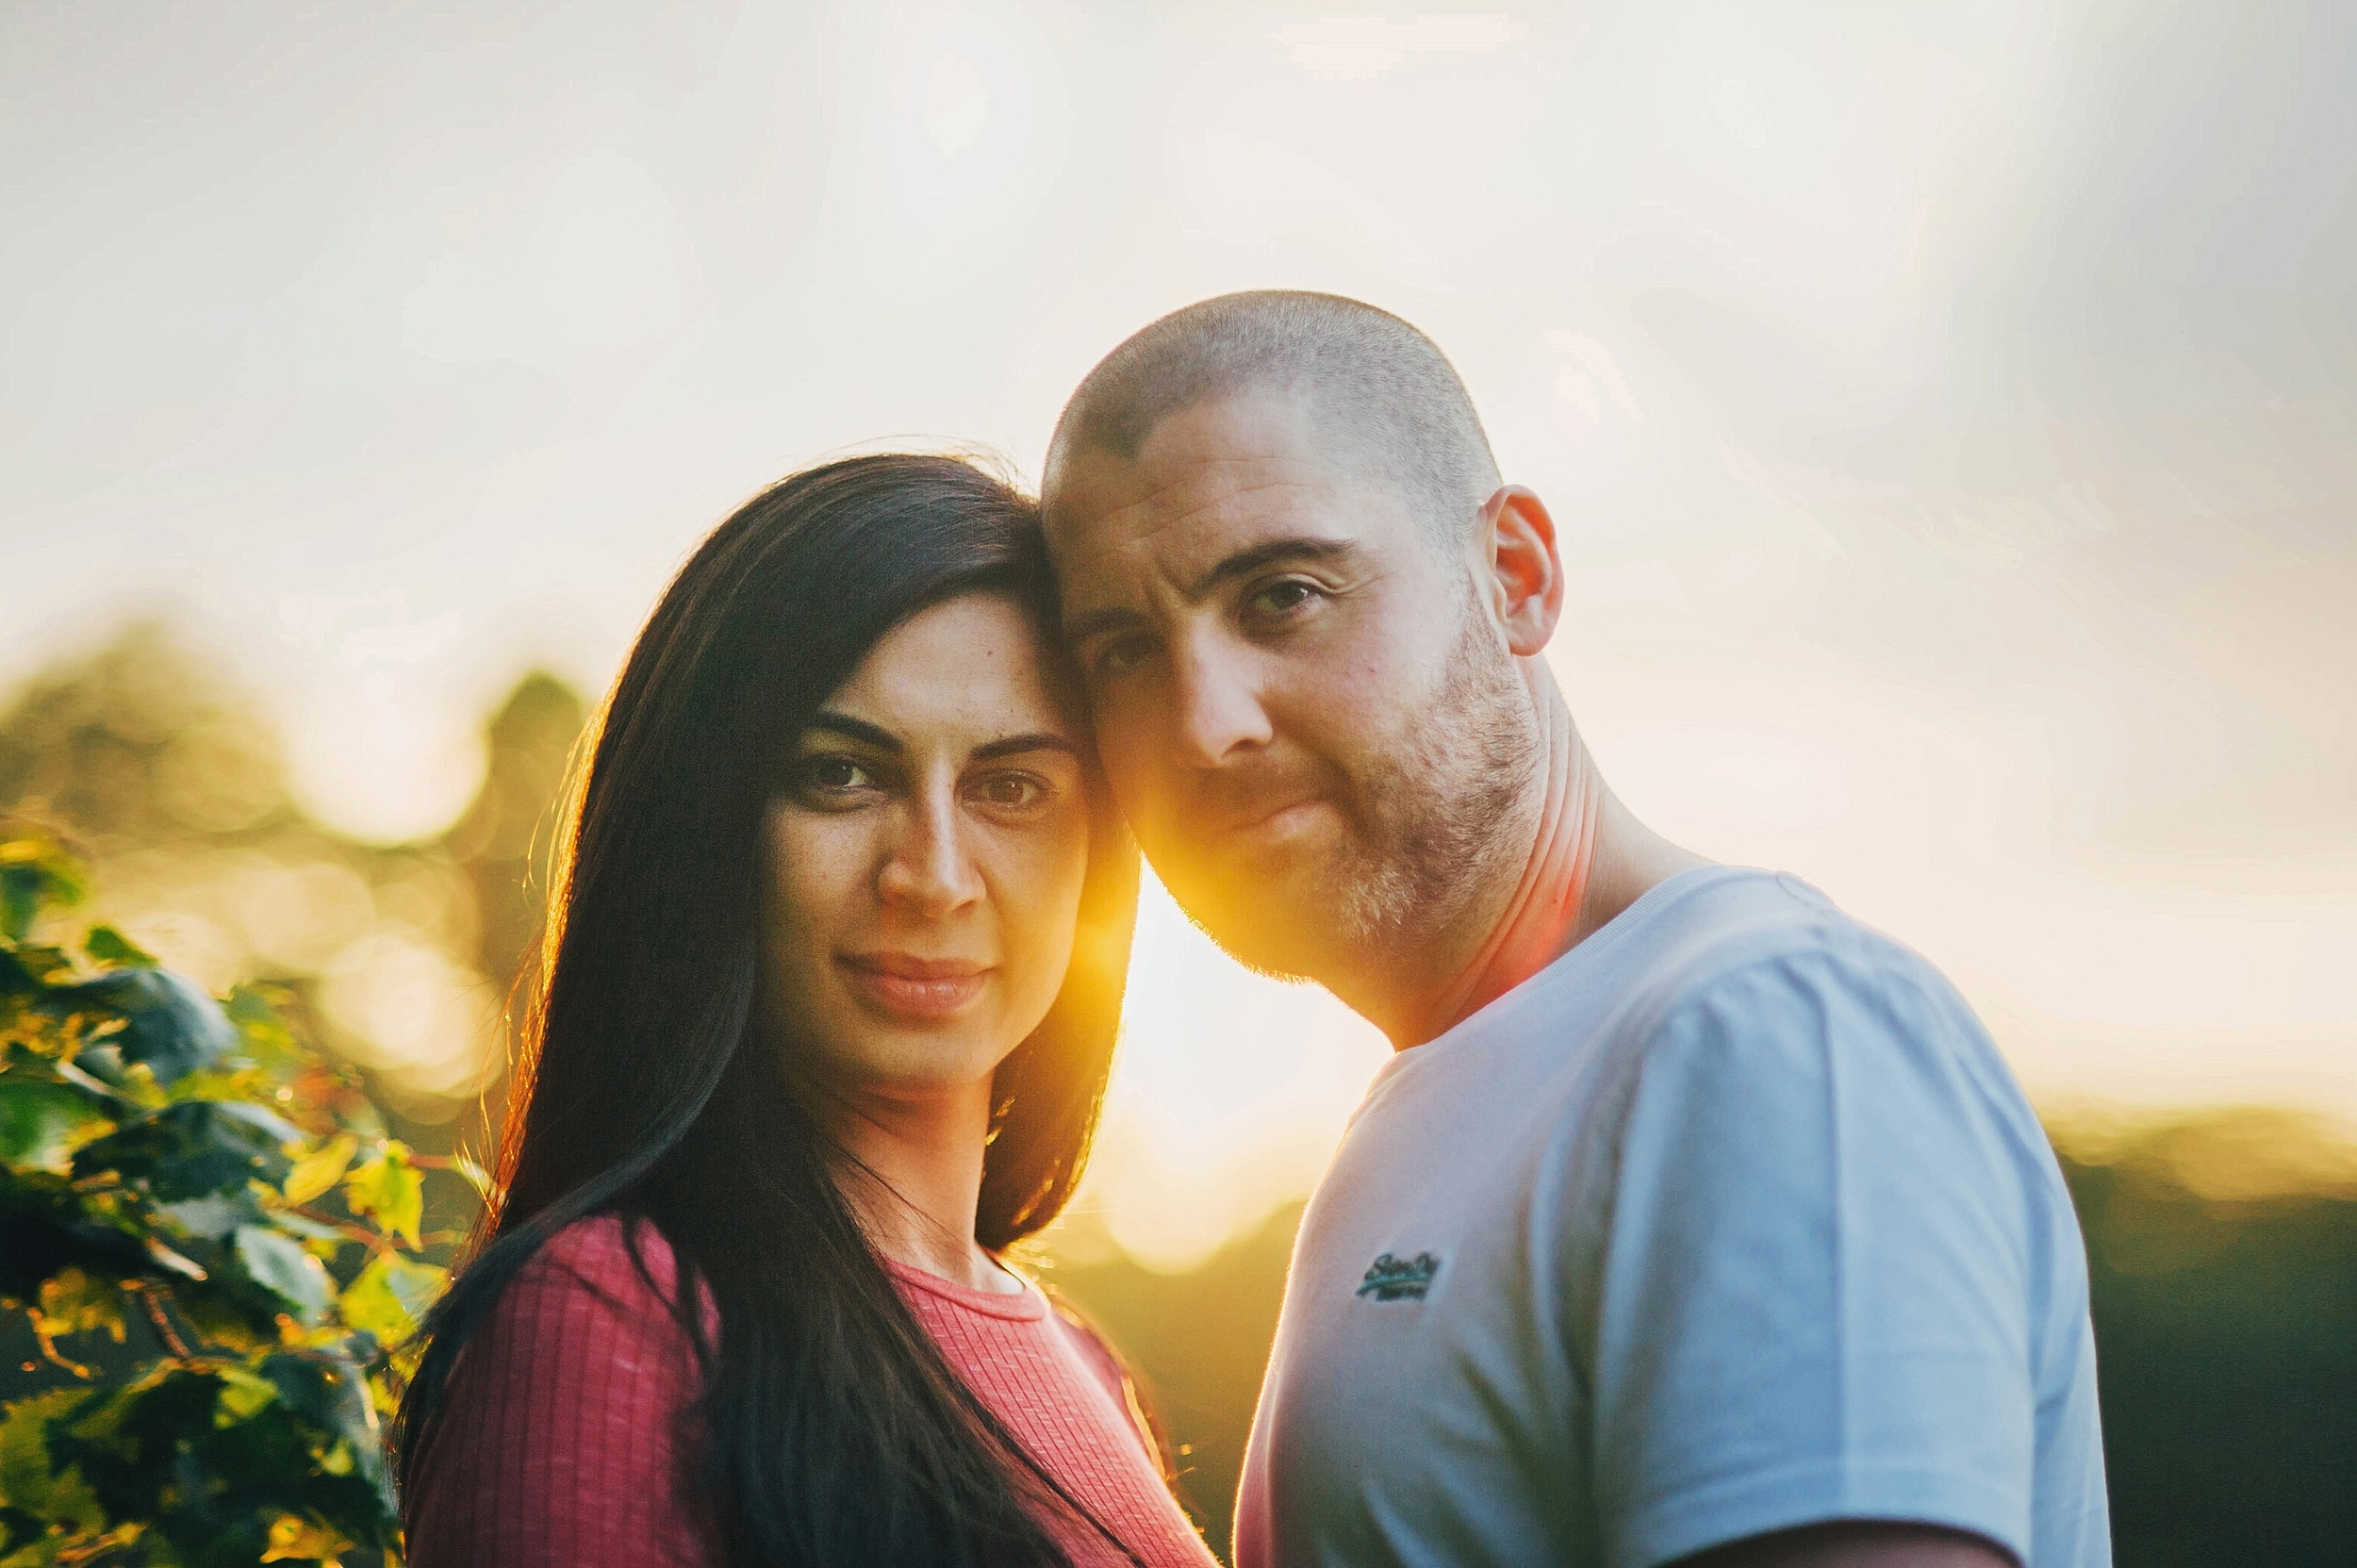 Love Shoot Couples Portraits at Hylands House Chelmsford Essex UK Documentary Portrait and Lifestyle Photographer